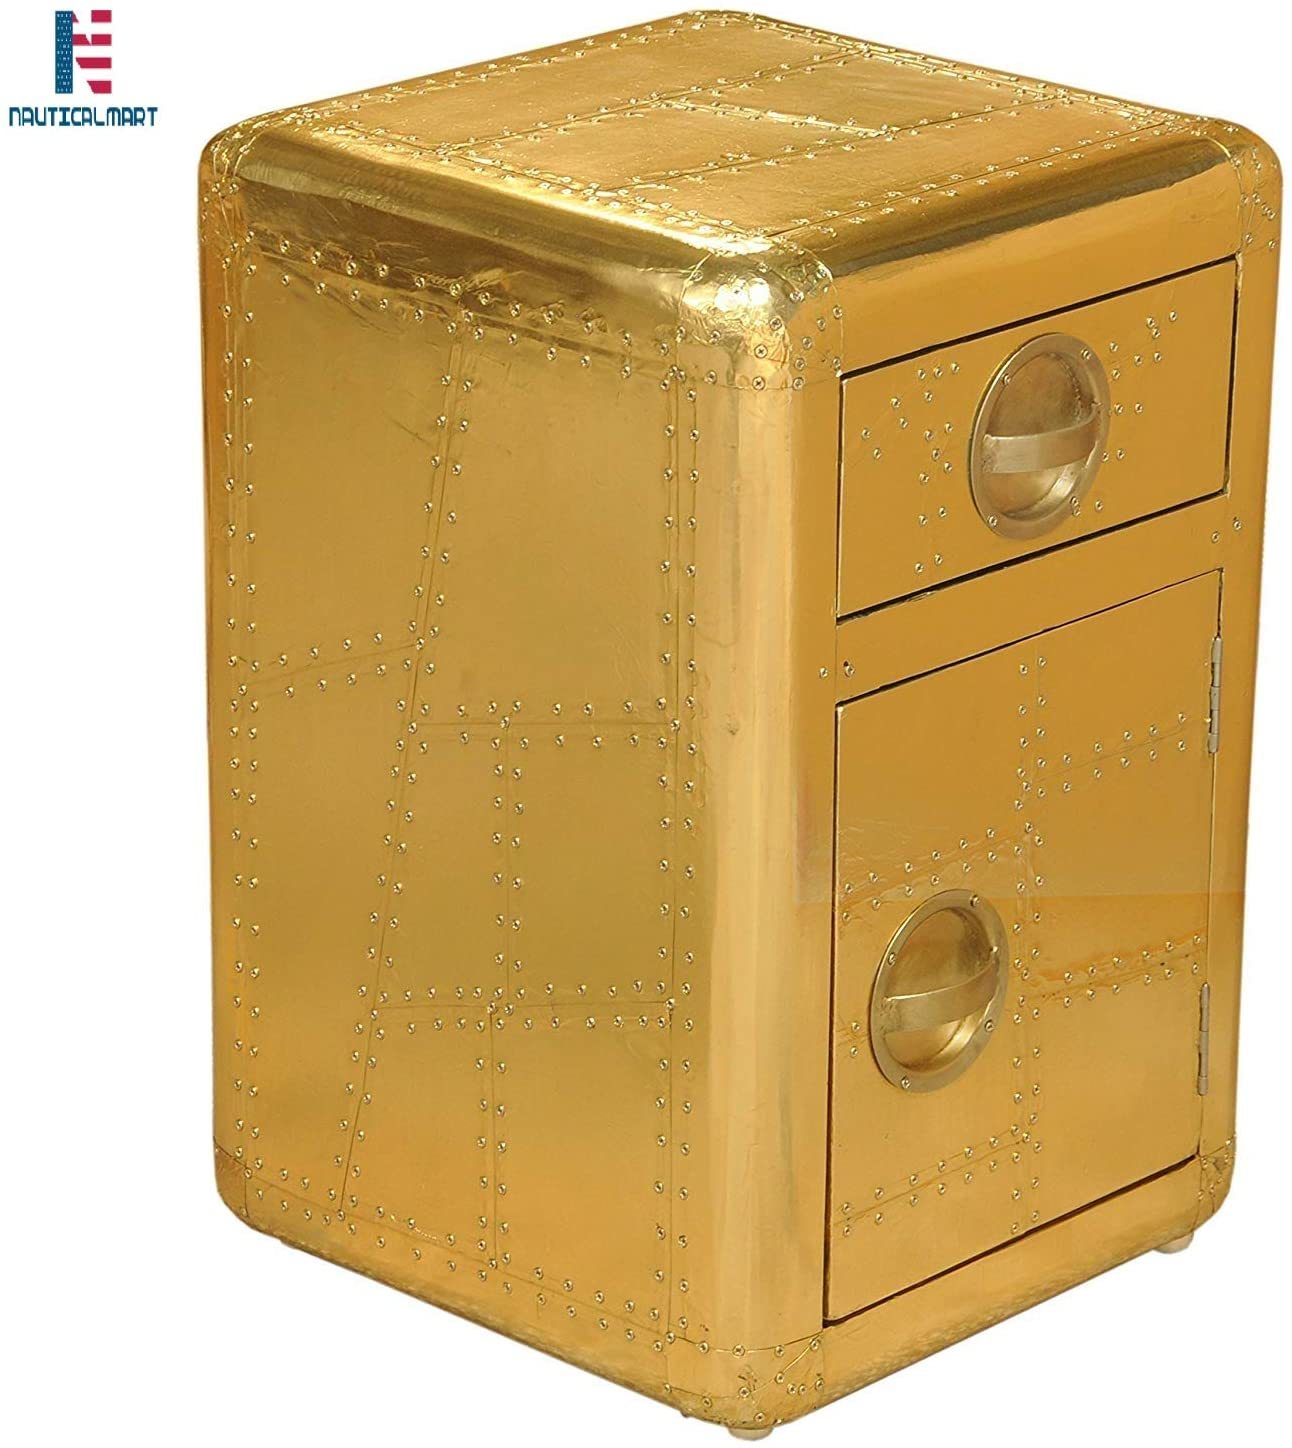 NauticalMart Aviator Side Table with Door and Drawer Handmade Aviation Accent Chest Gold